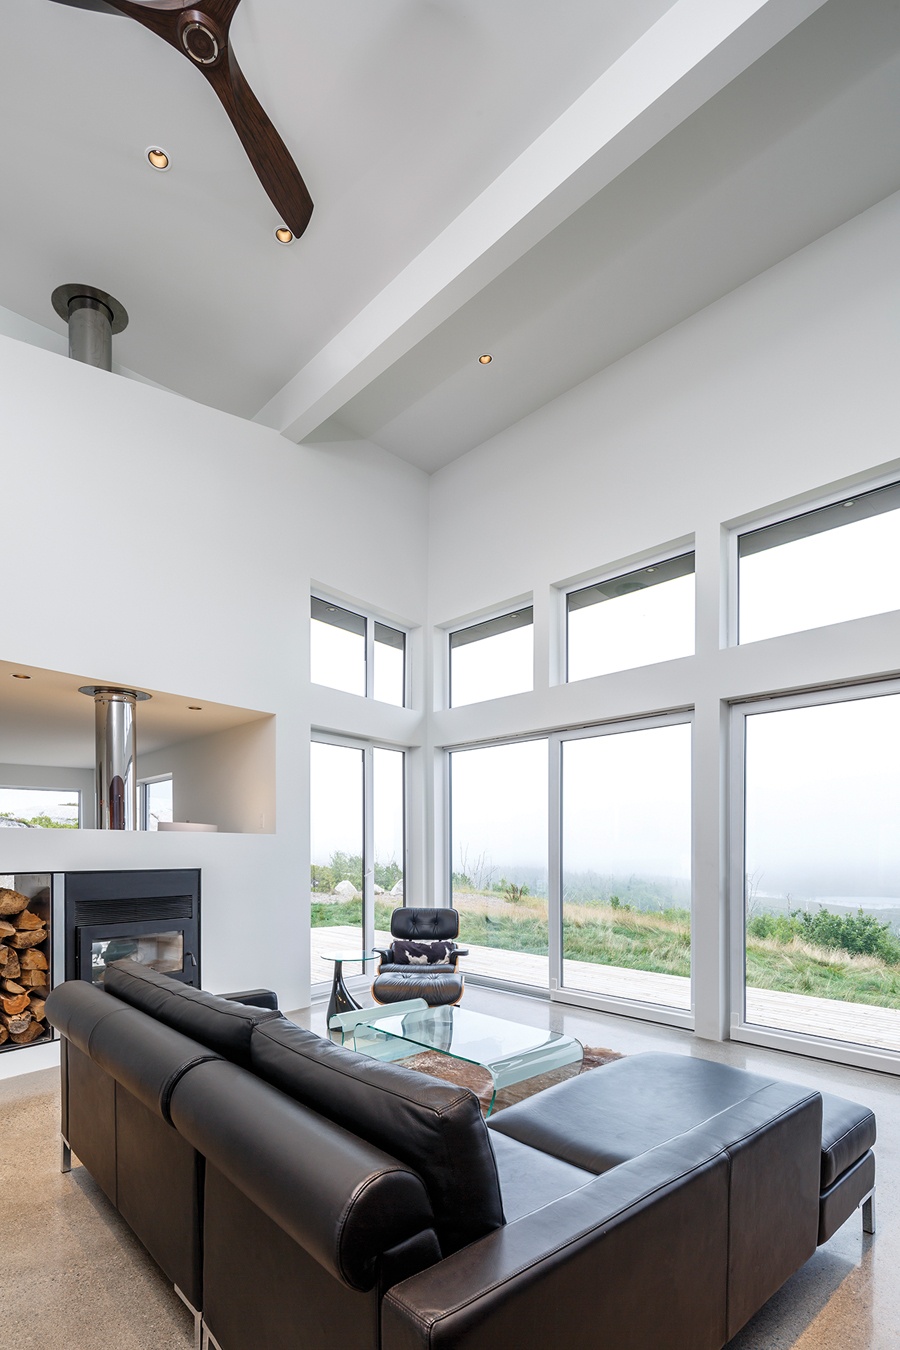 The living room enjoys a panoramic view of an inland lake.